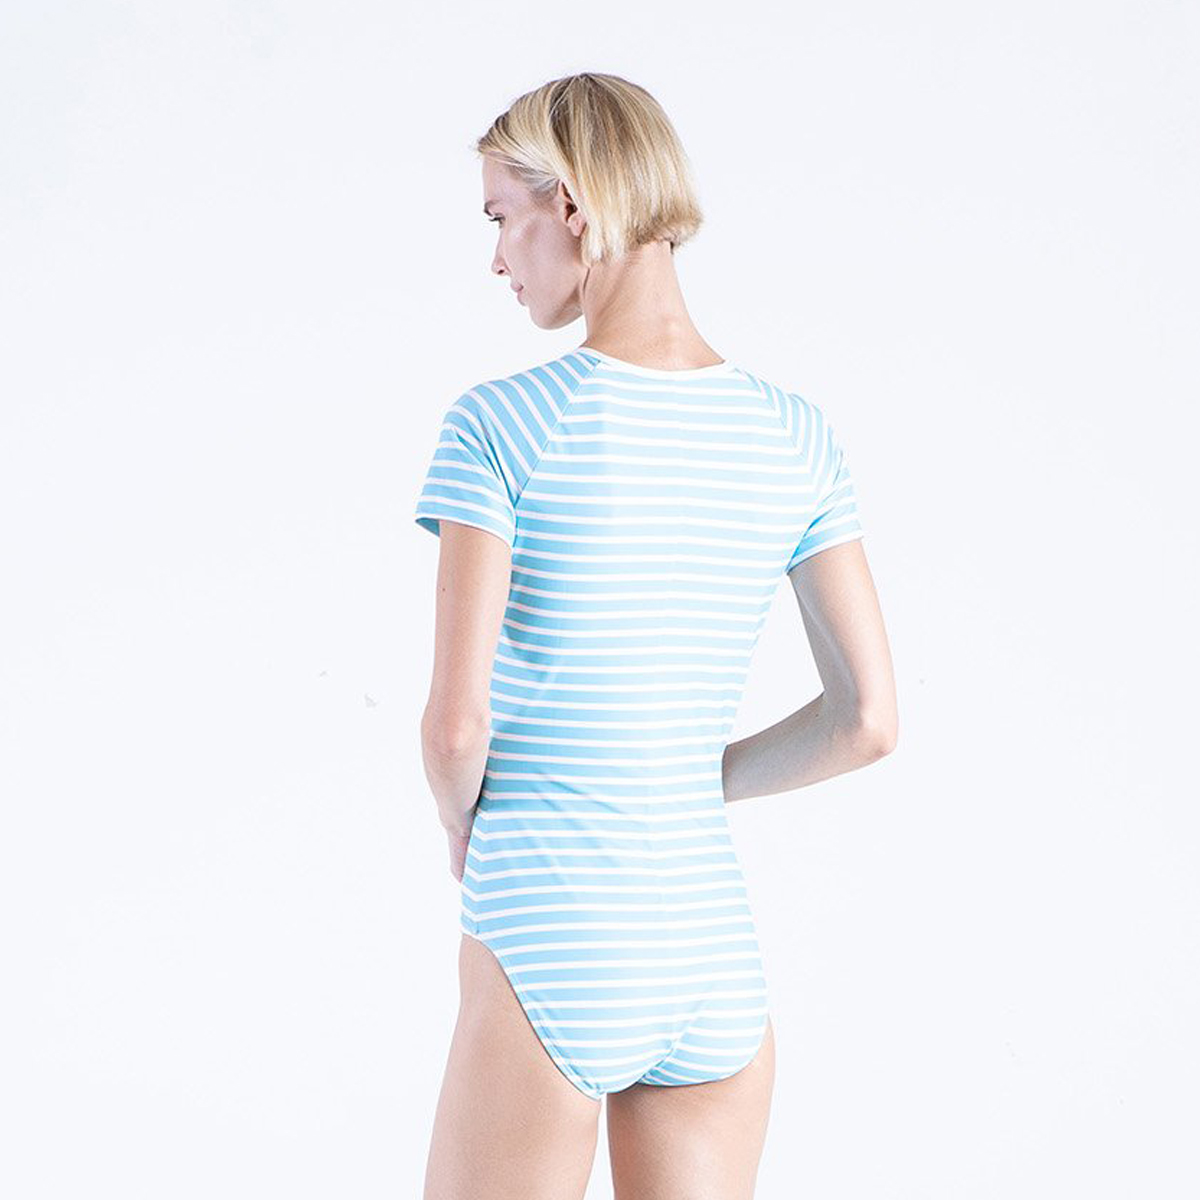 628a7692d2523 CoverSwimSS19WomensSwimsuitFrontZipBlueStripe1  CoverSwimSS19WomensSwimsuitFrontZipBlueStripe2  CoverSwimSS19WomensSwimsuitFrontZipBlueStripe3